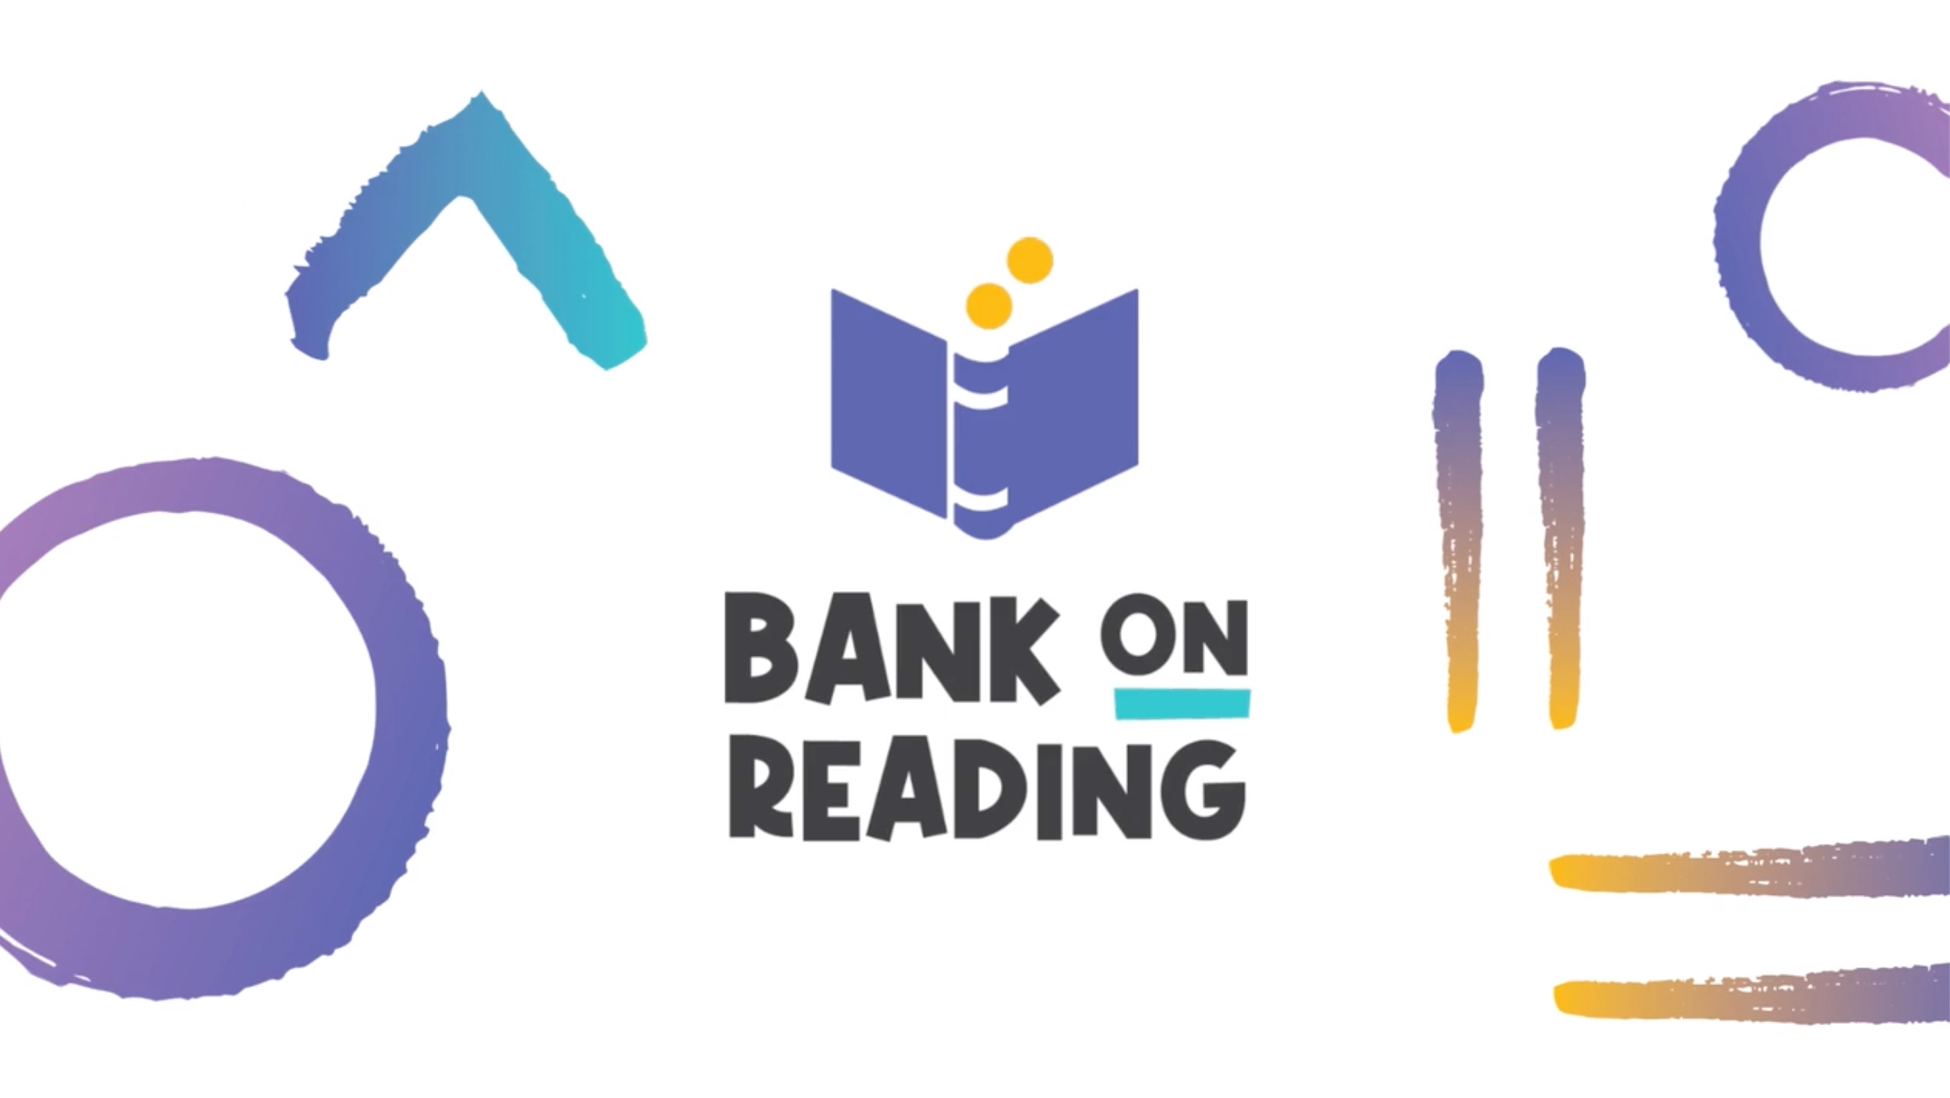 Bank on Reading video.